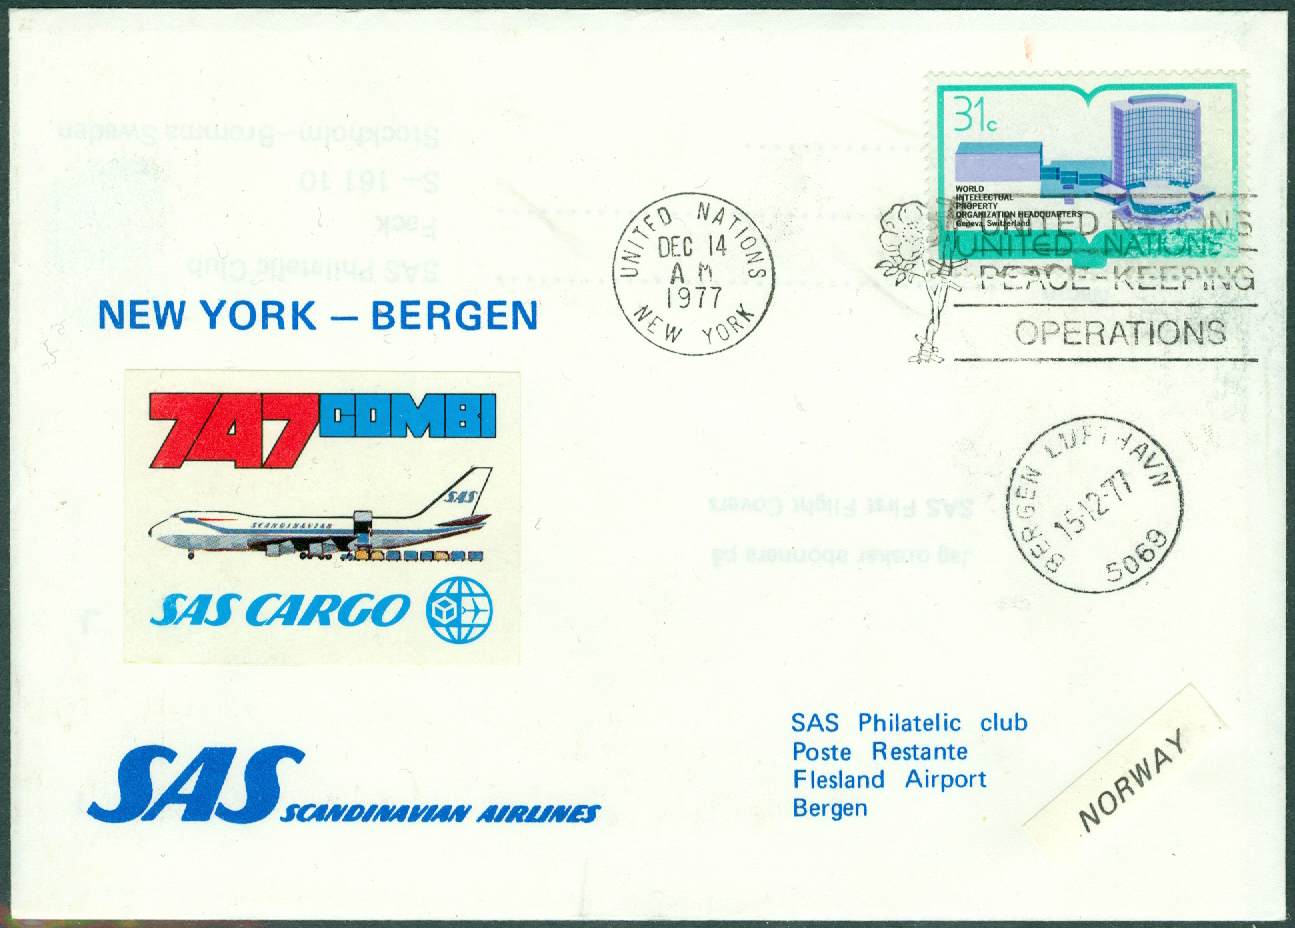 FN New York - 1977-12-14 - SAS Cargo 747 Combi / New York - Bergen